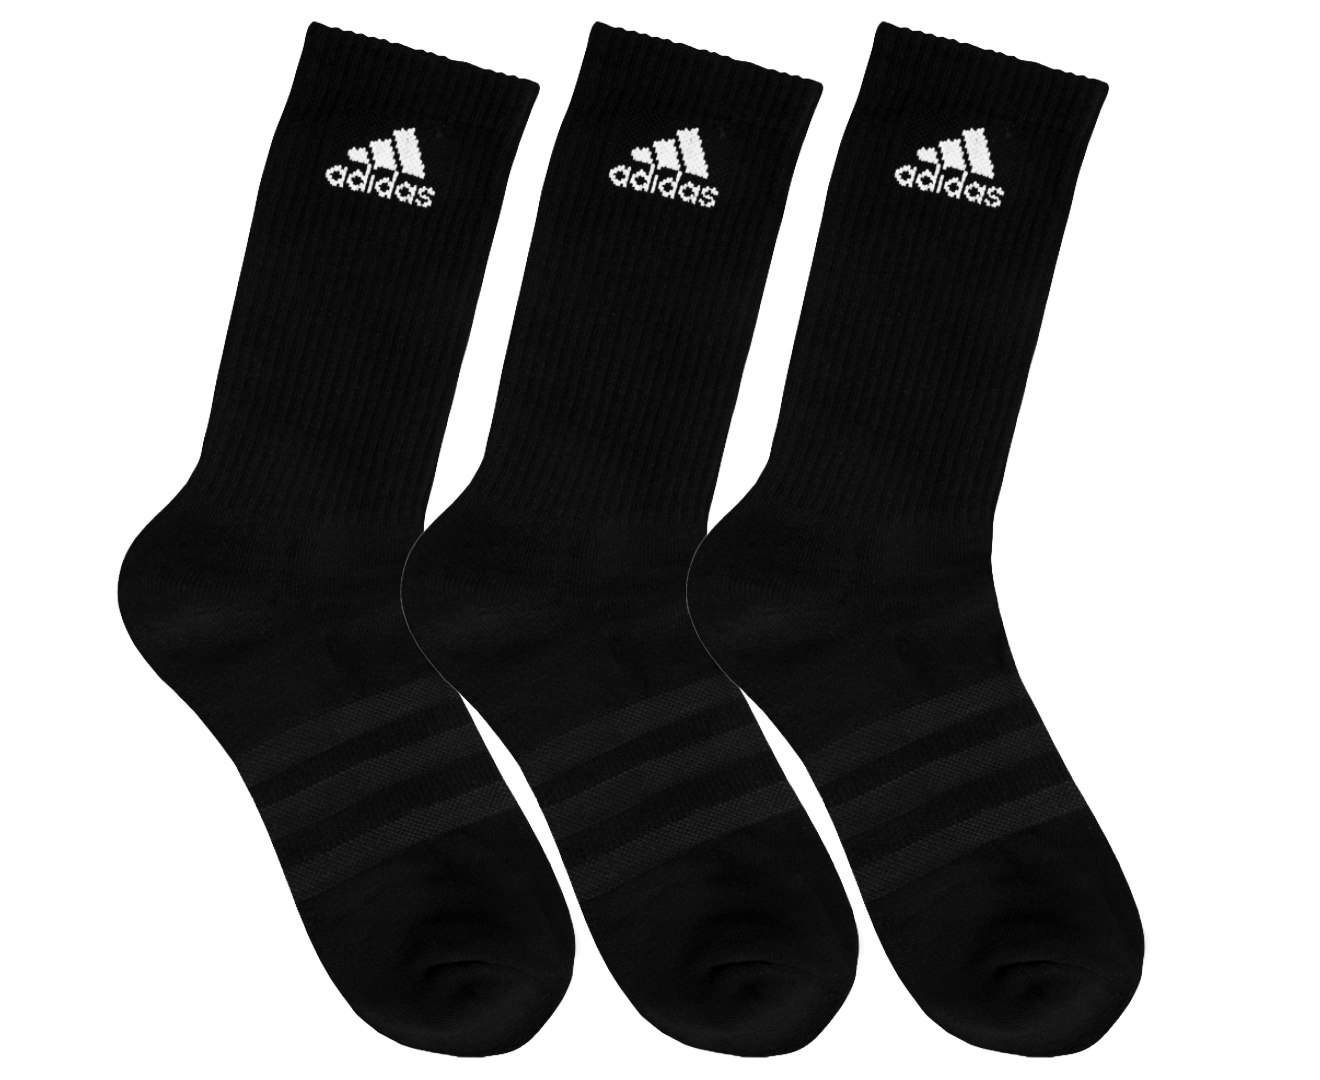 10620cd026c Picture 1 of 3; Picture 2 of 3; Picture 3 of 3. Adidas 3-Stripes  Performance Crew 3pk ...